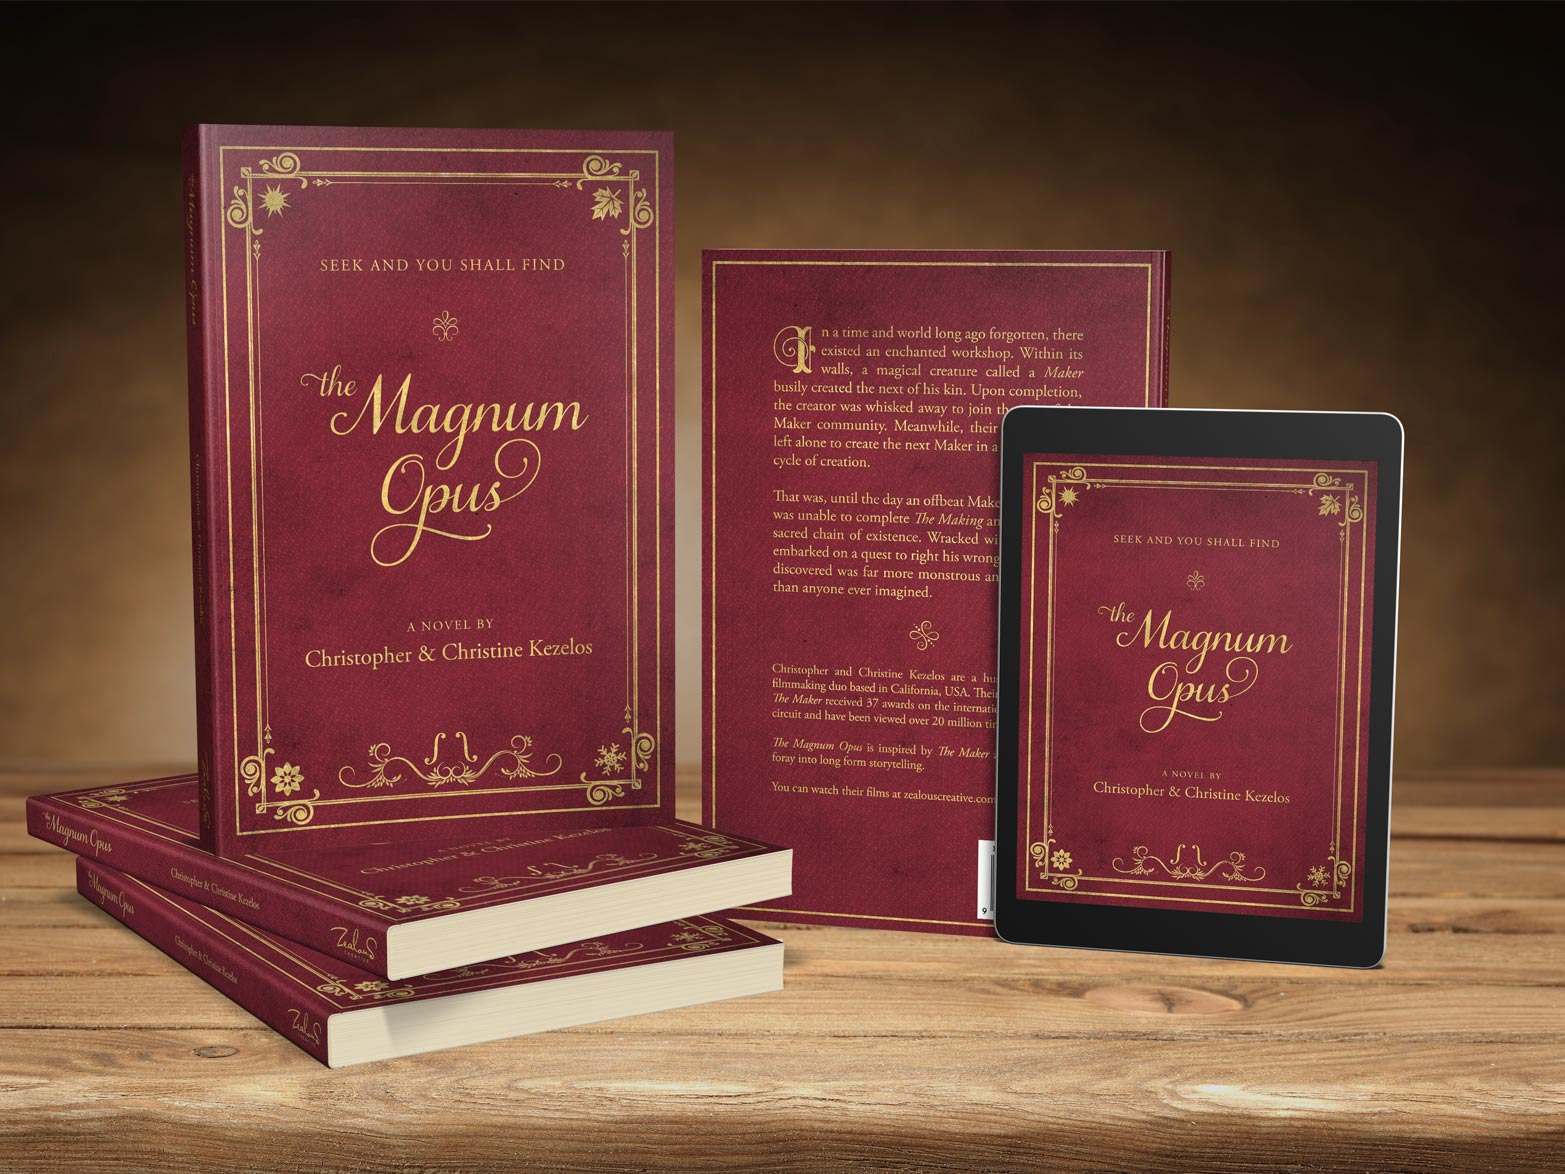 The Magnum Opus Paperback and eBook